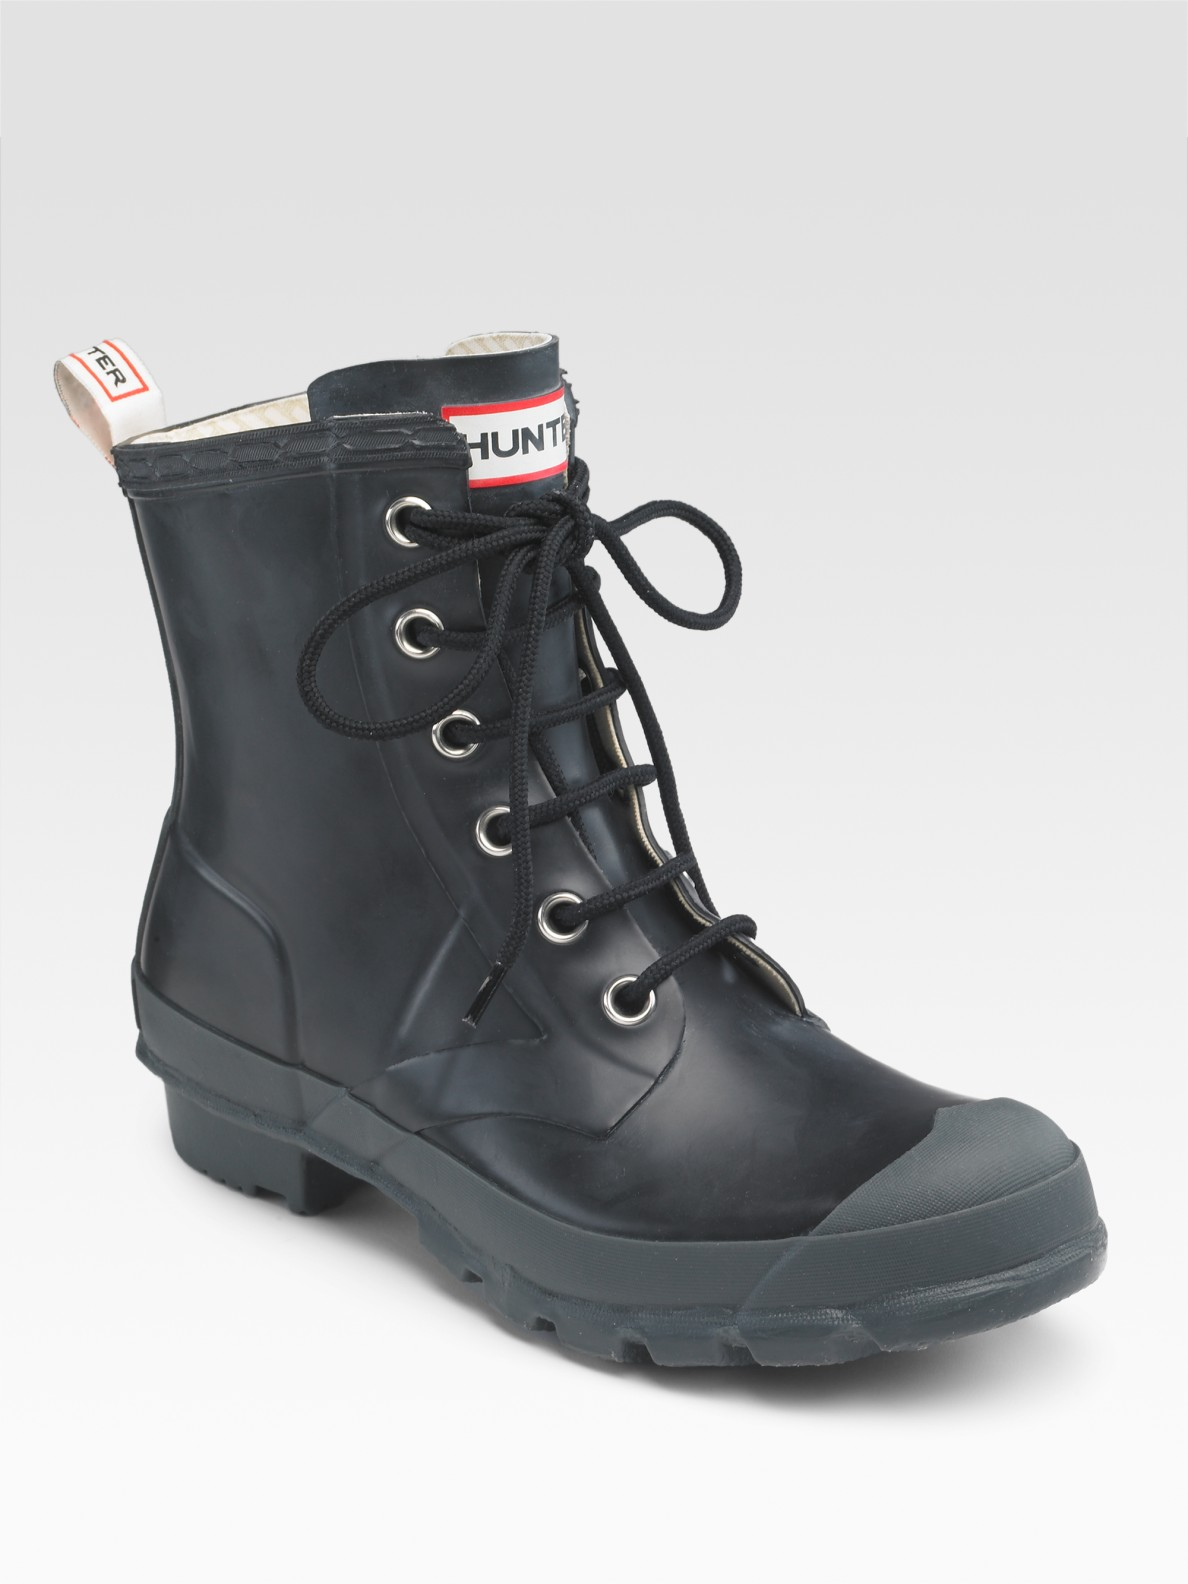 Hunter Rubber Combat Short Rain Boots In Black Lyst